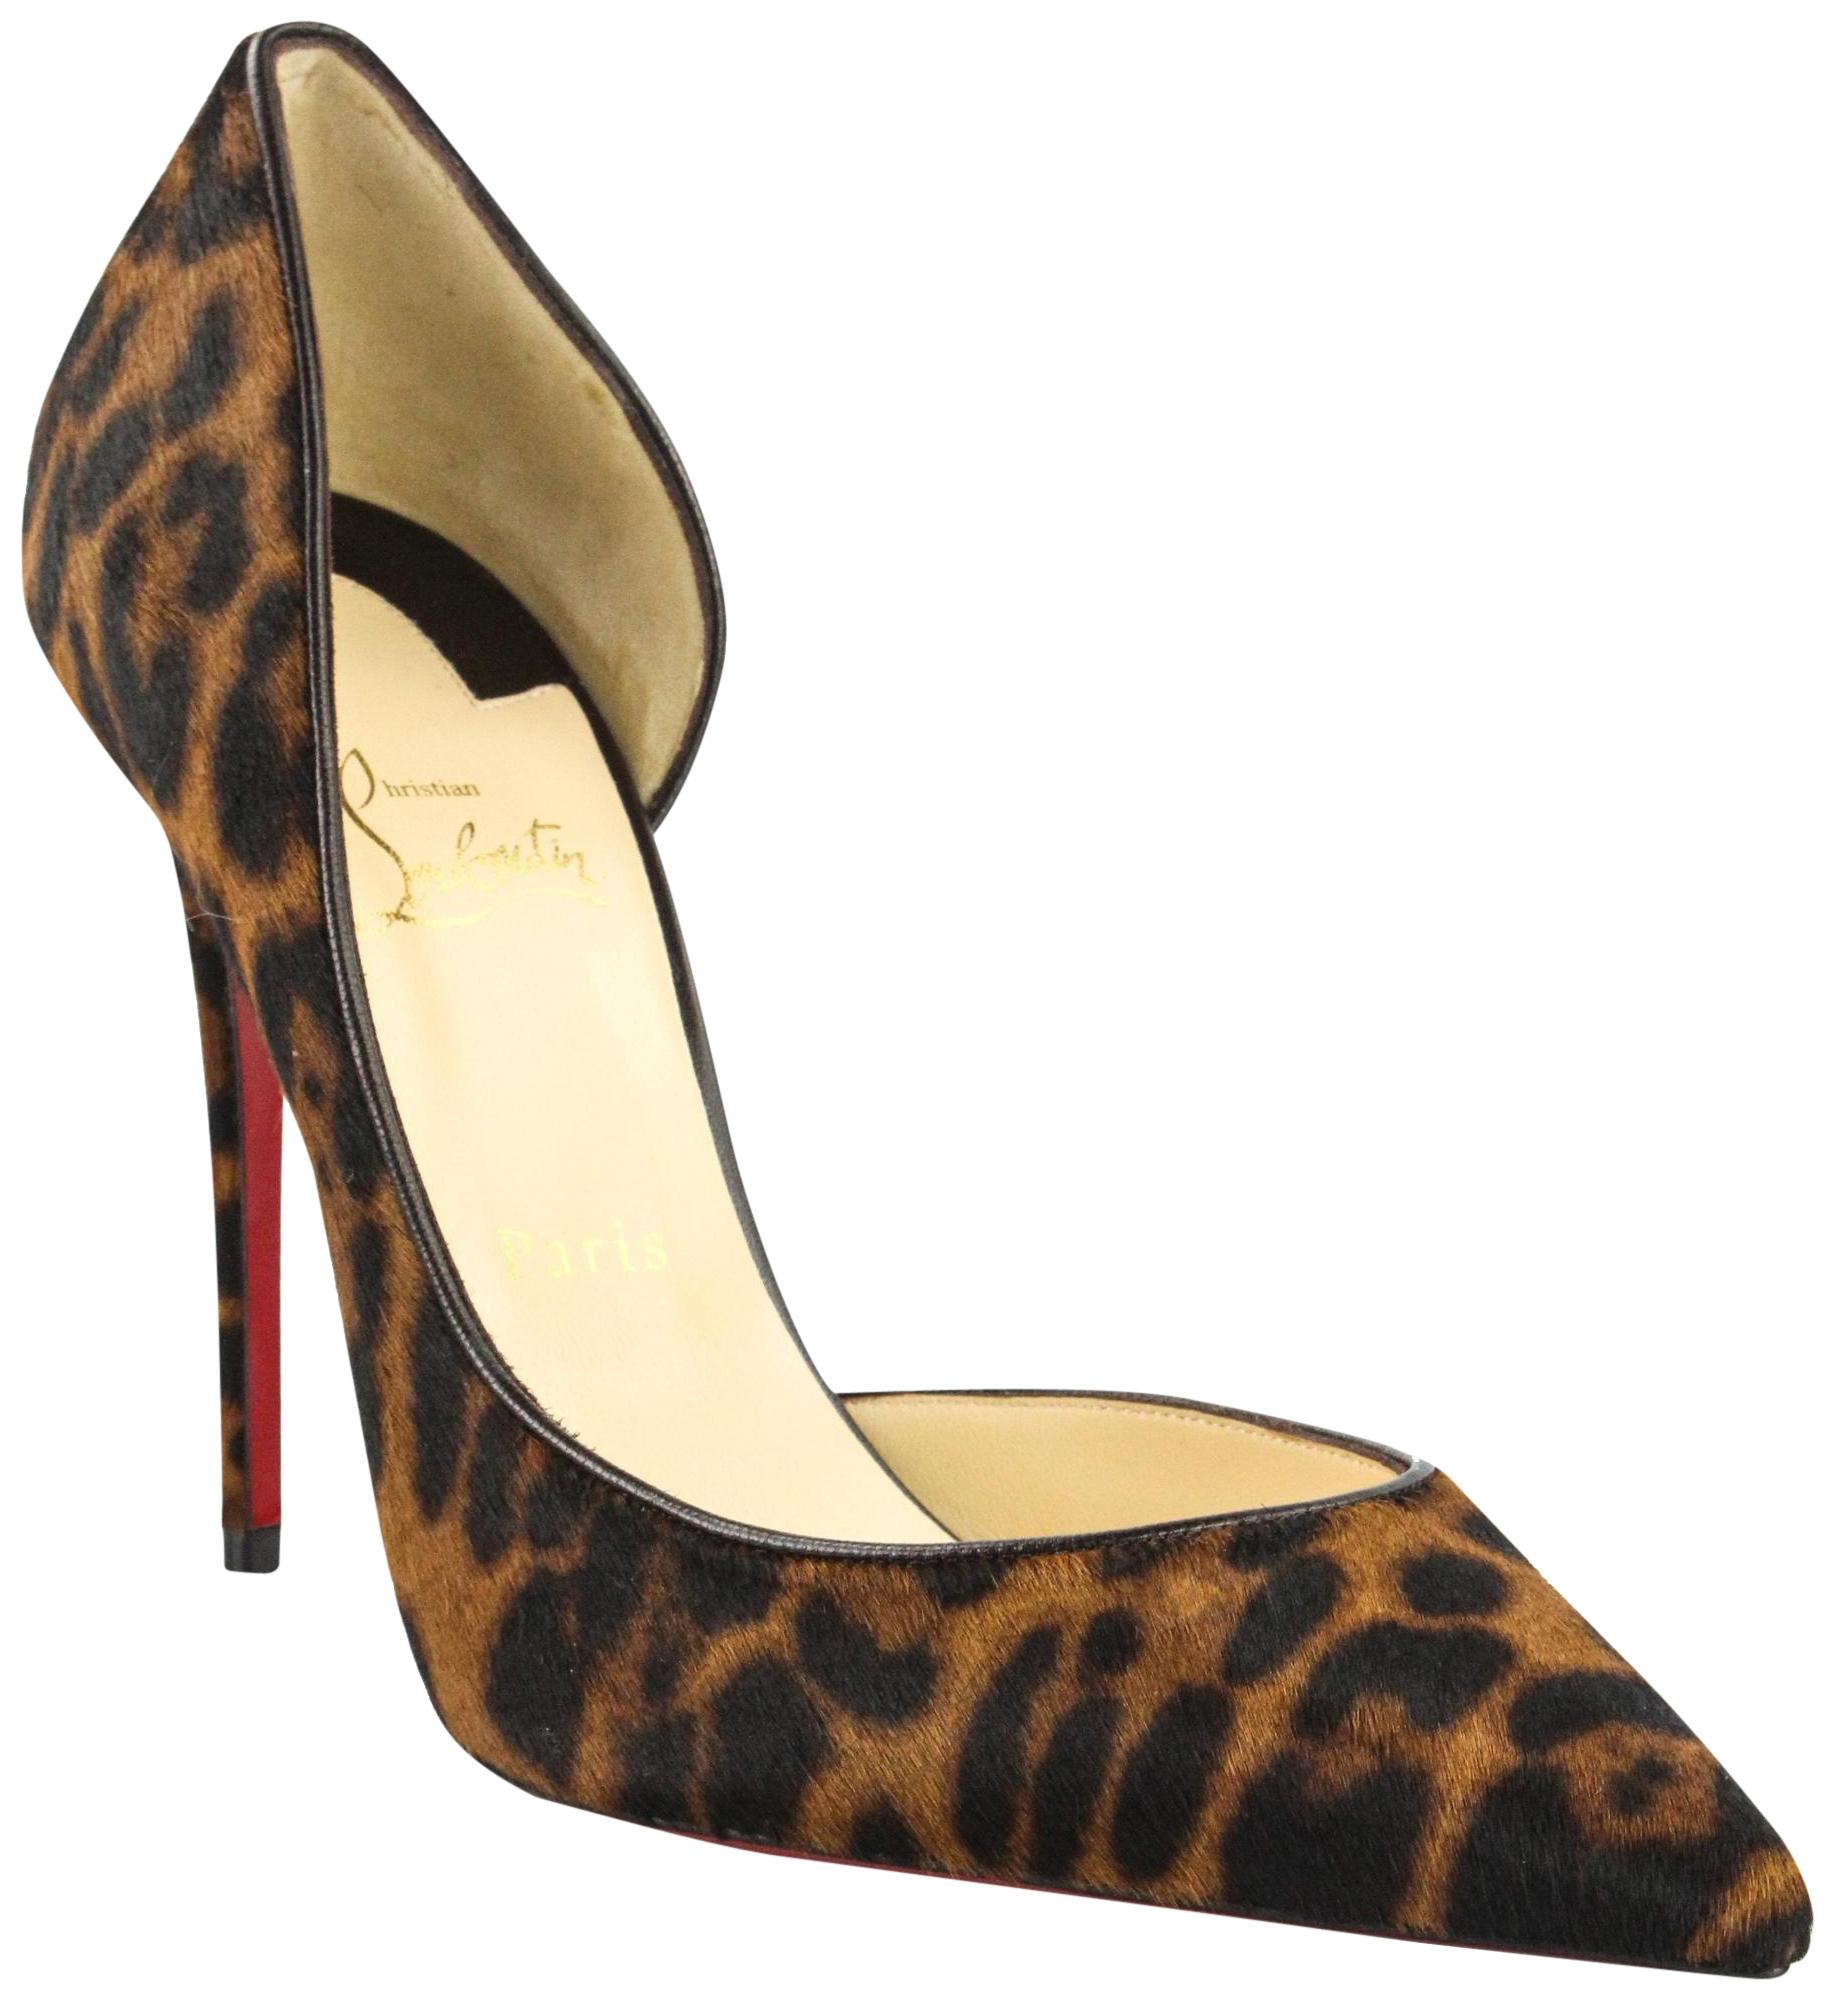 f72654a83a32 Christian Christian Christian Louboutin Brown Iriza 100 Pony Dark  Leopard Kid Pumps Size EU 41 (Approx. US 11) Regular (M